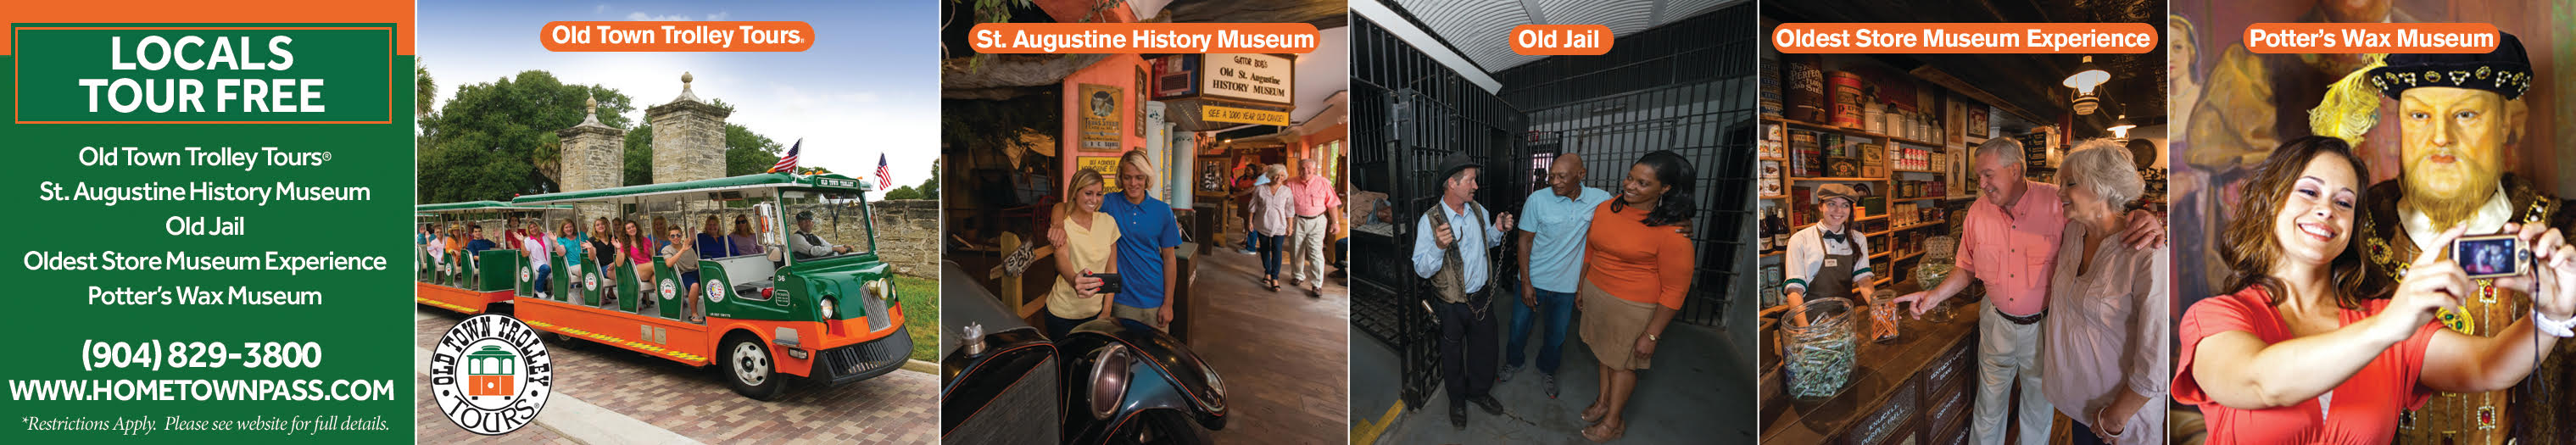 St. Augustine ALL Tours, Sightseeing, Museums & Attractions